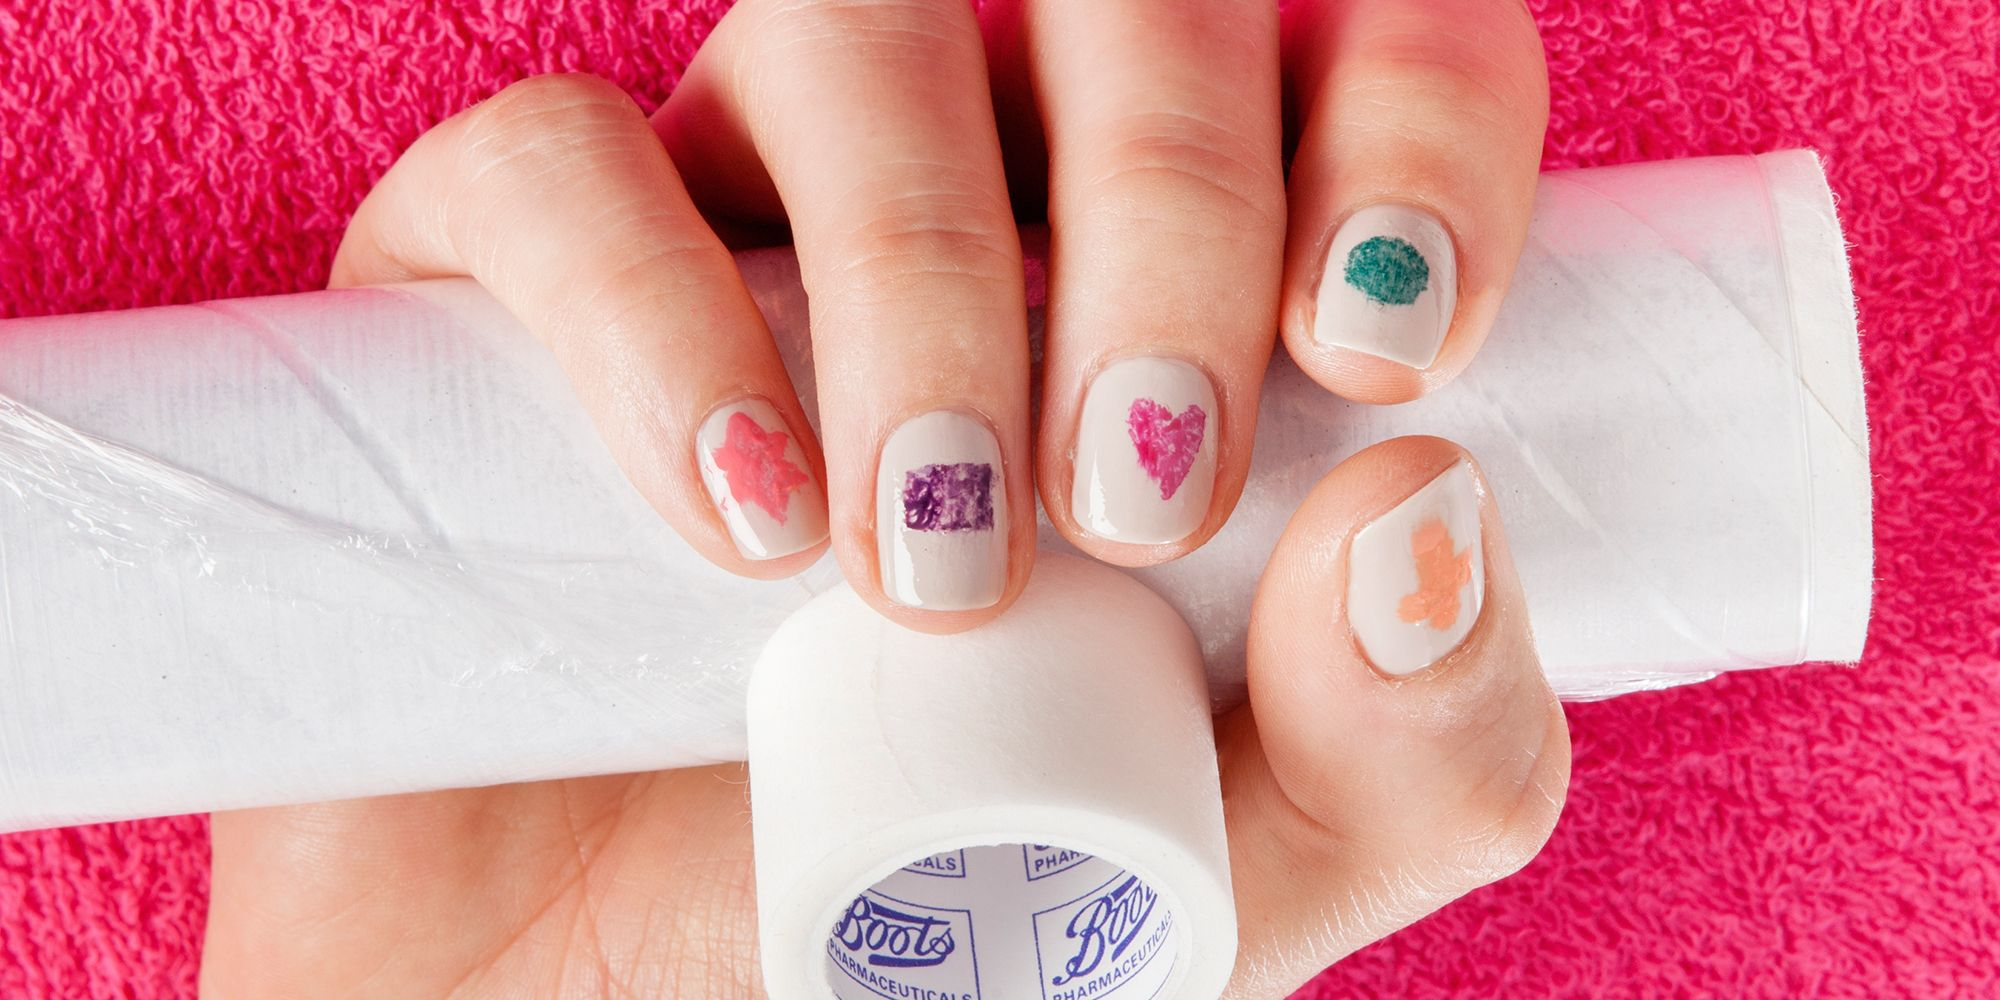 Diy Nail Art How To Do Marble Effect Shapes Using Adhesive Tape And Cling Film